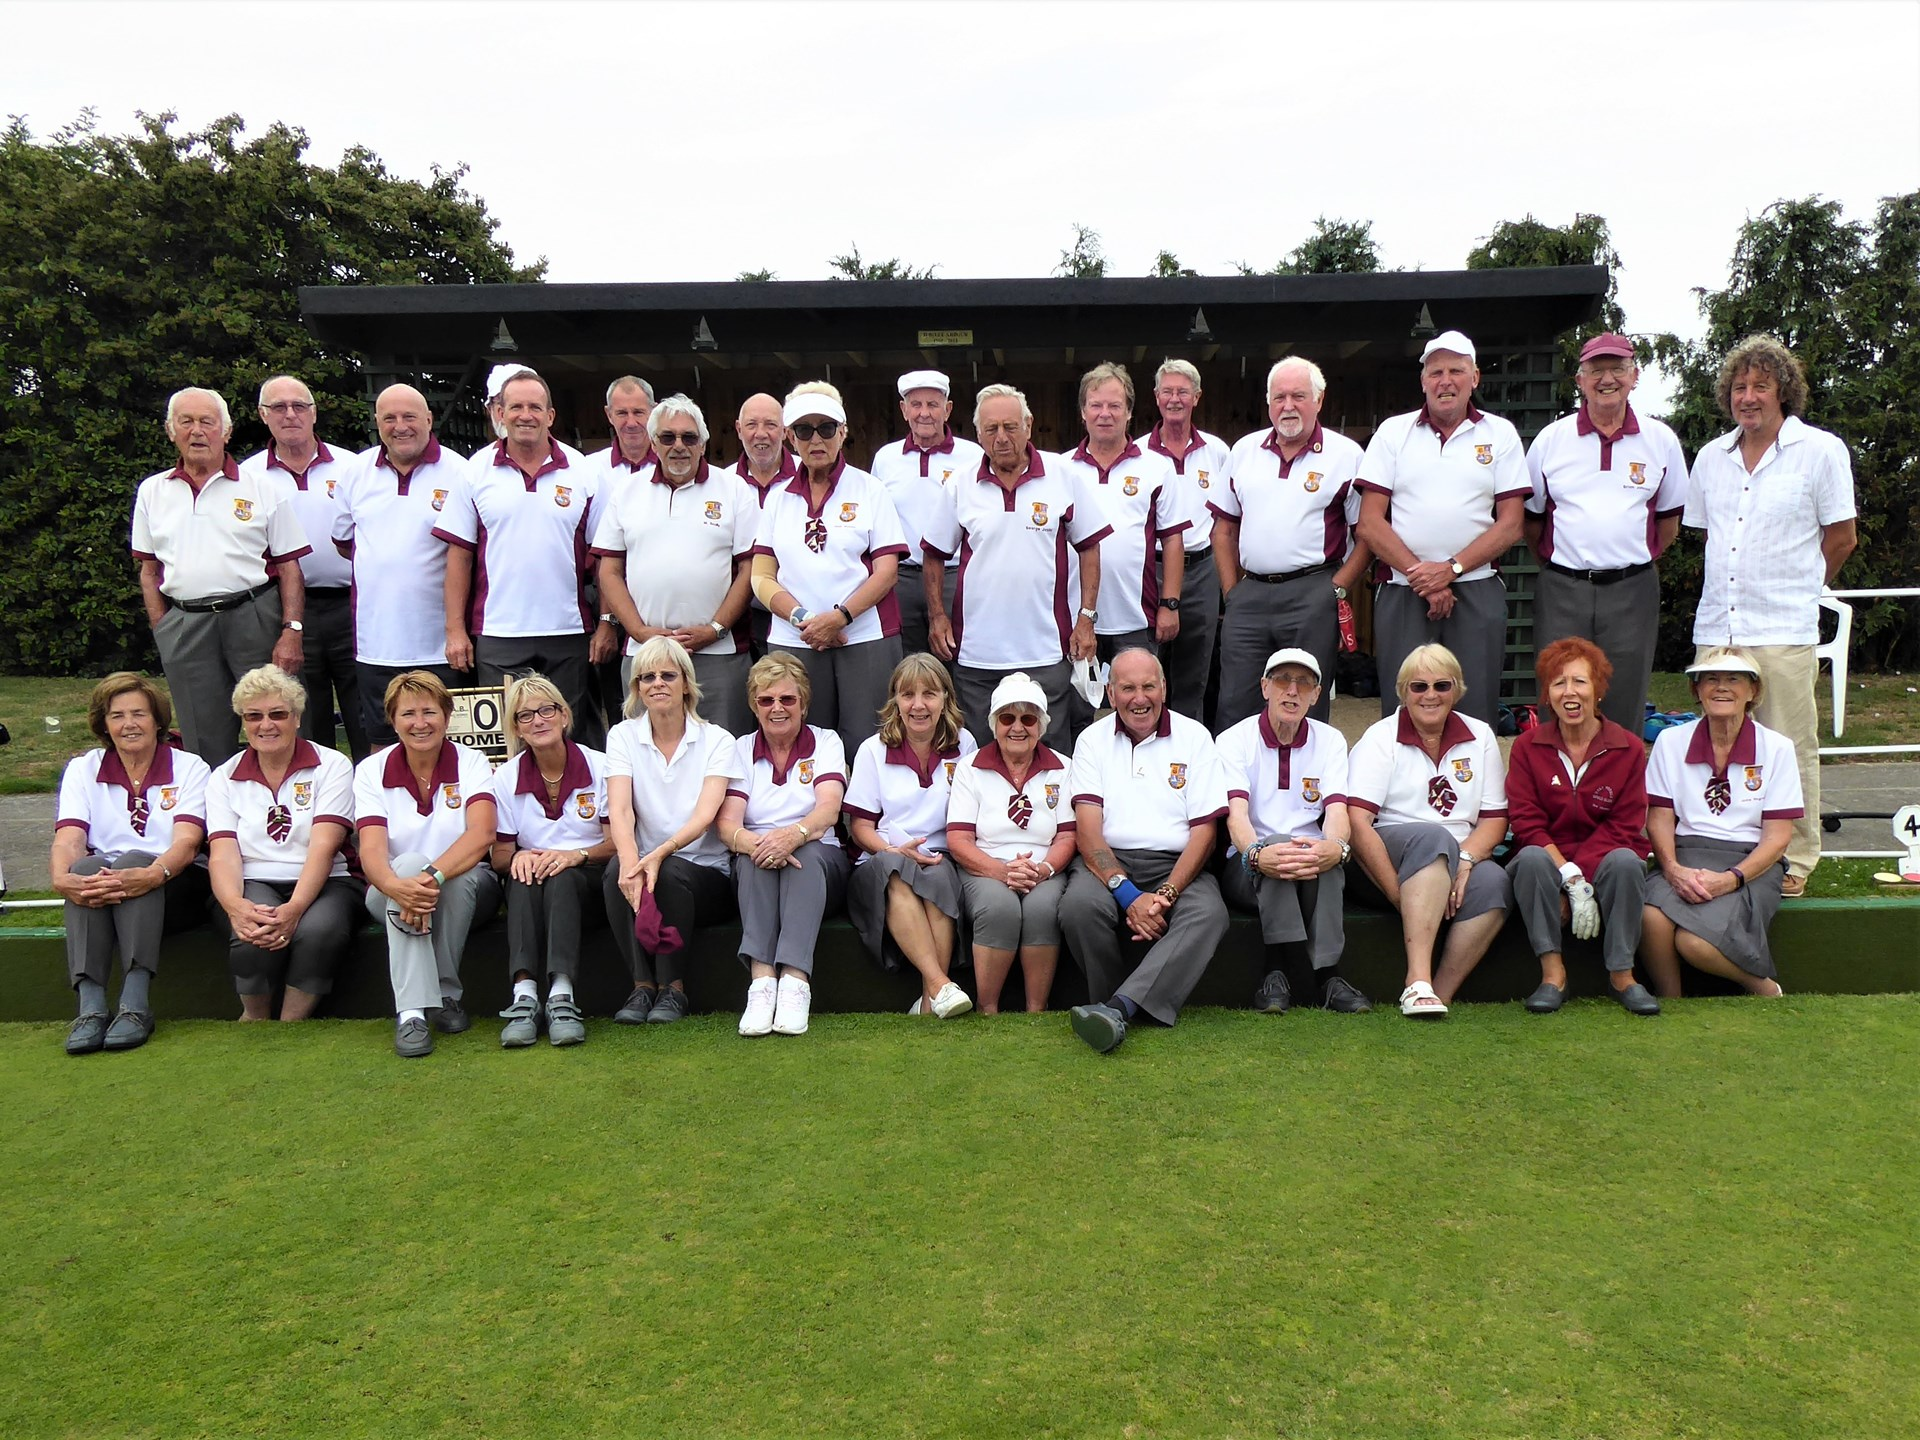 West Mersea Bowls Club 2019 Ladies v Men